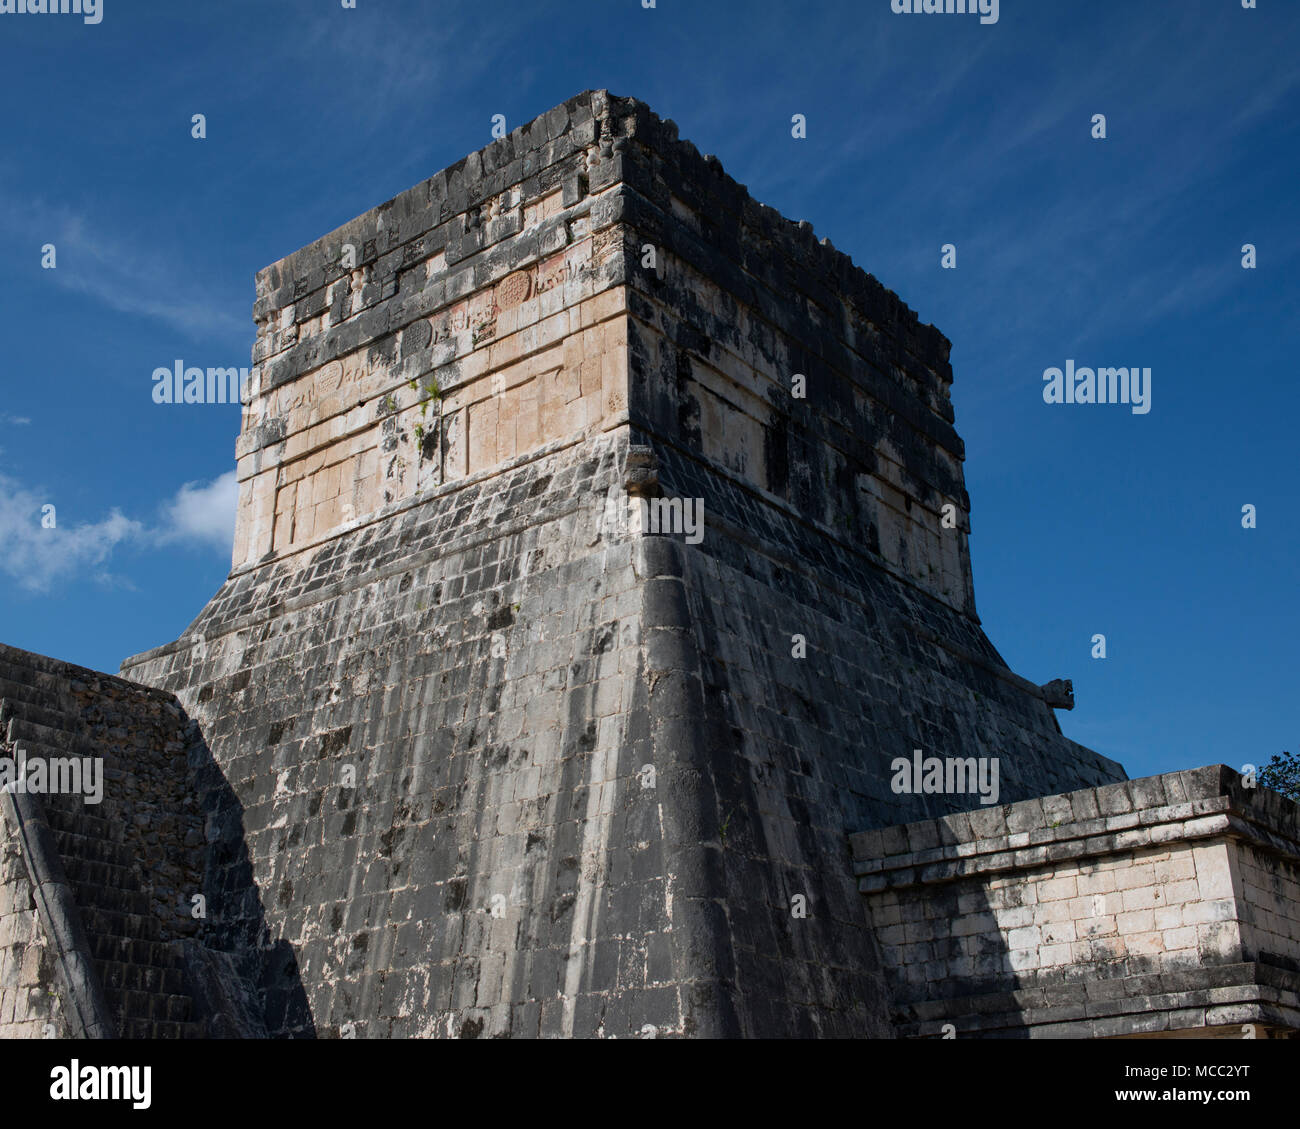 An ancient Mayan temple at Chichén Itzá, Yucatán State, Mexico. - Stock Image